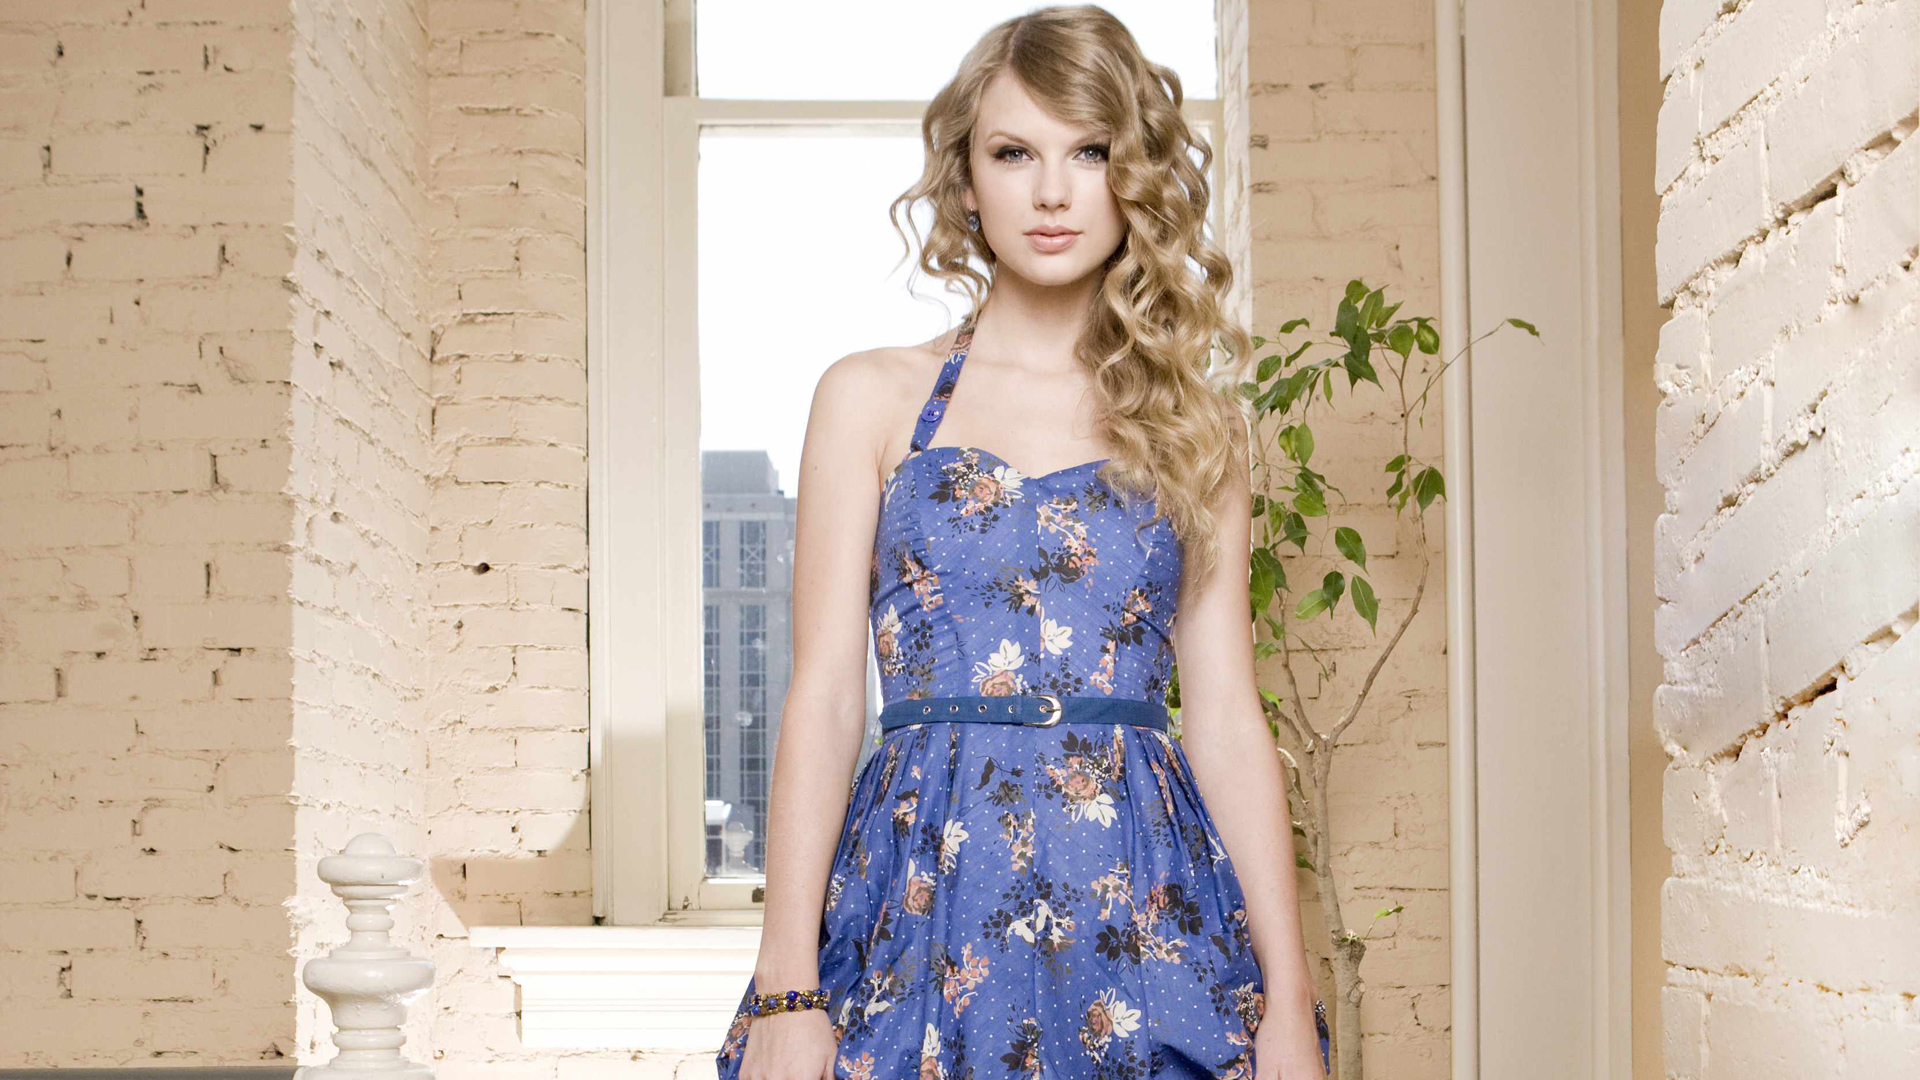 pictures of taylor-swift-wallpaper-cute